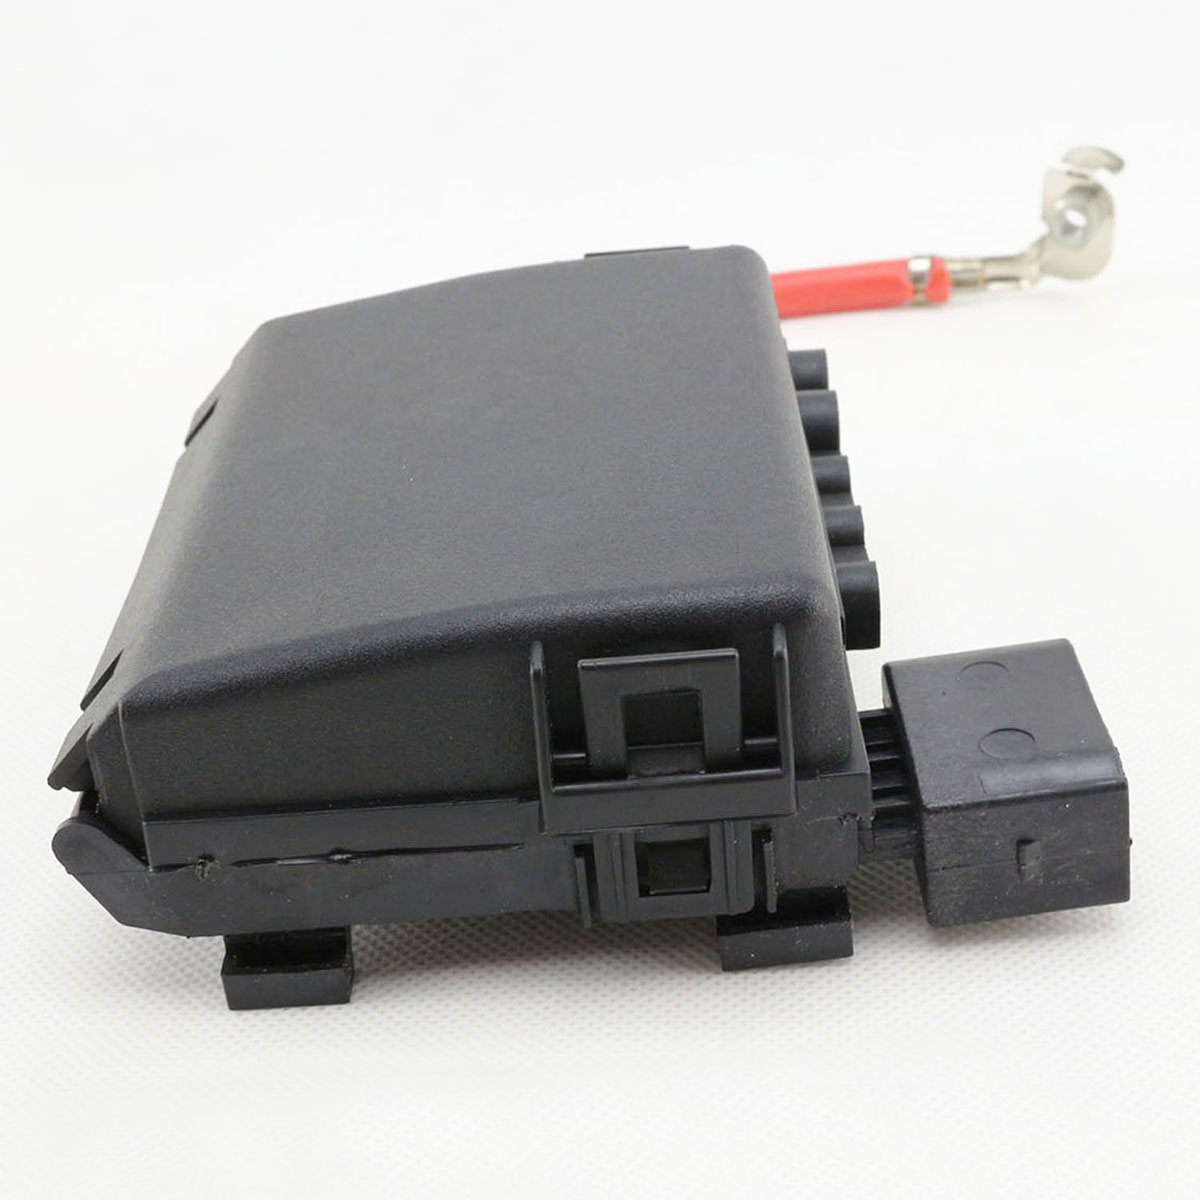 New Battery Terminal Fuse Box Holder for VW Jetta Golf MK4 Bora Beetle new battery terminal fuse box holder for vw jetta golf mk4 bora VW MK4 Sunroof Switch at soozxer.org